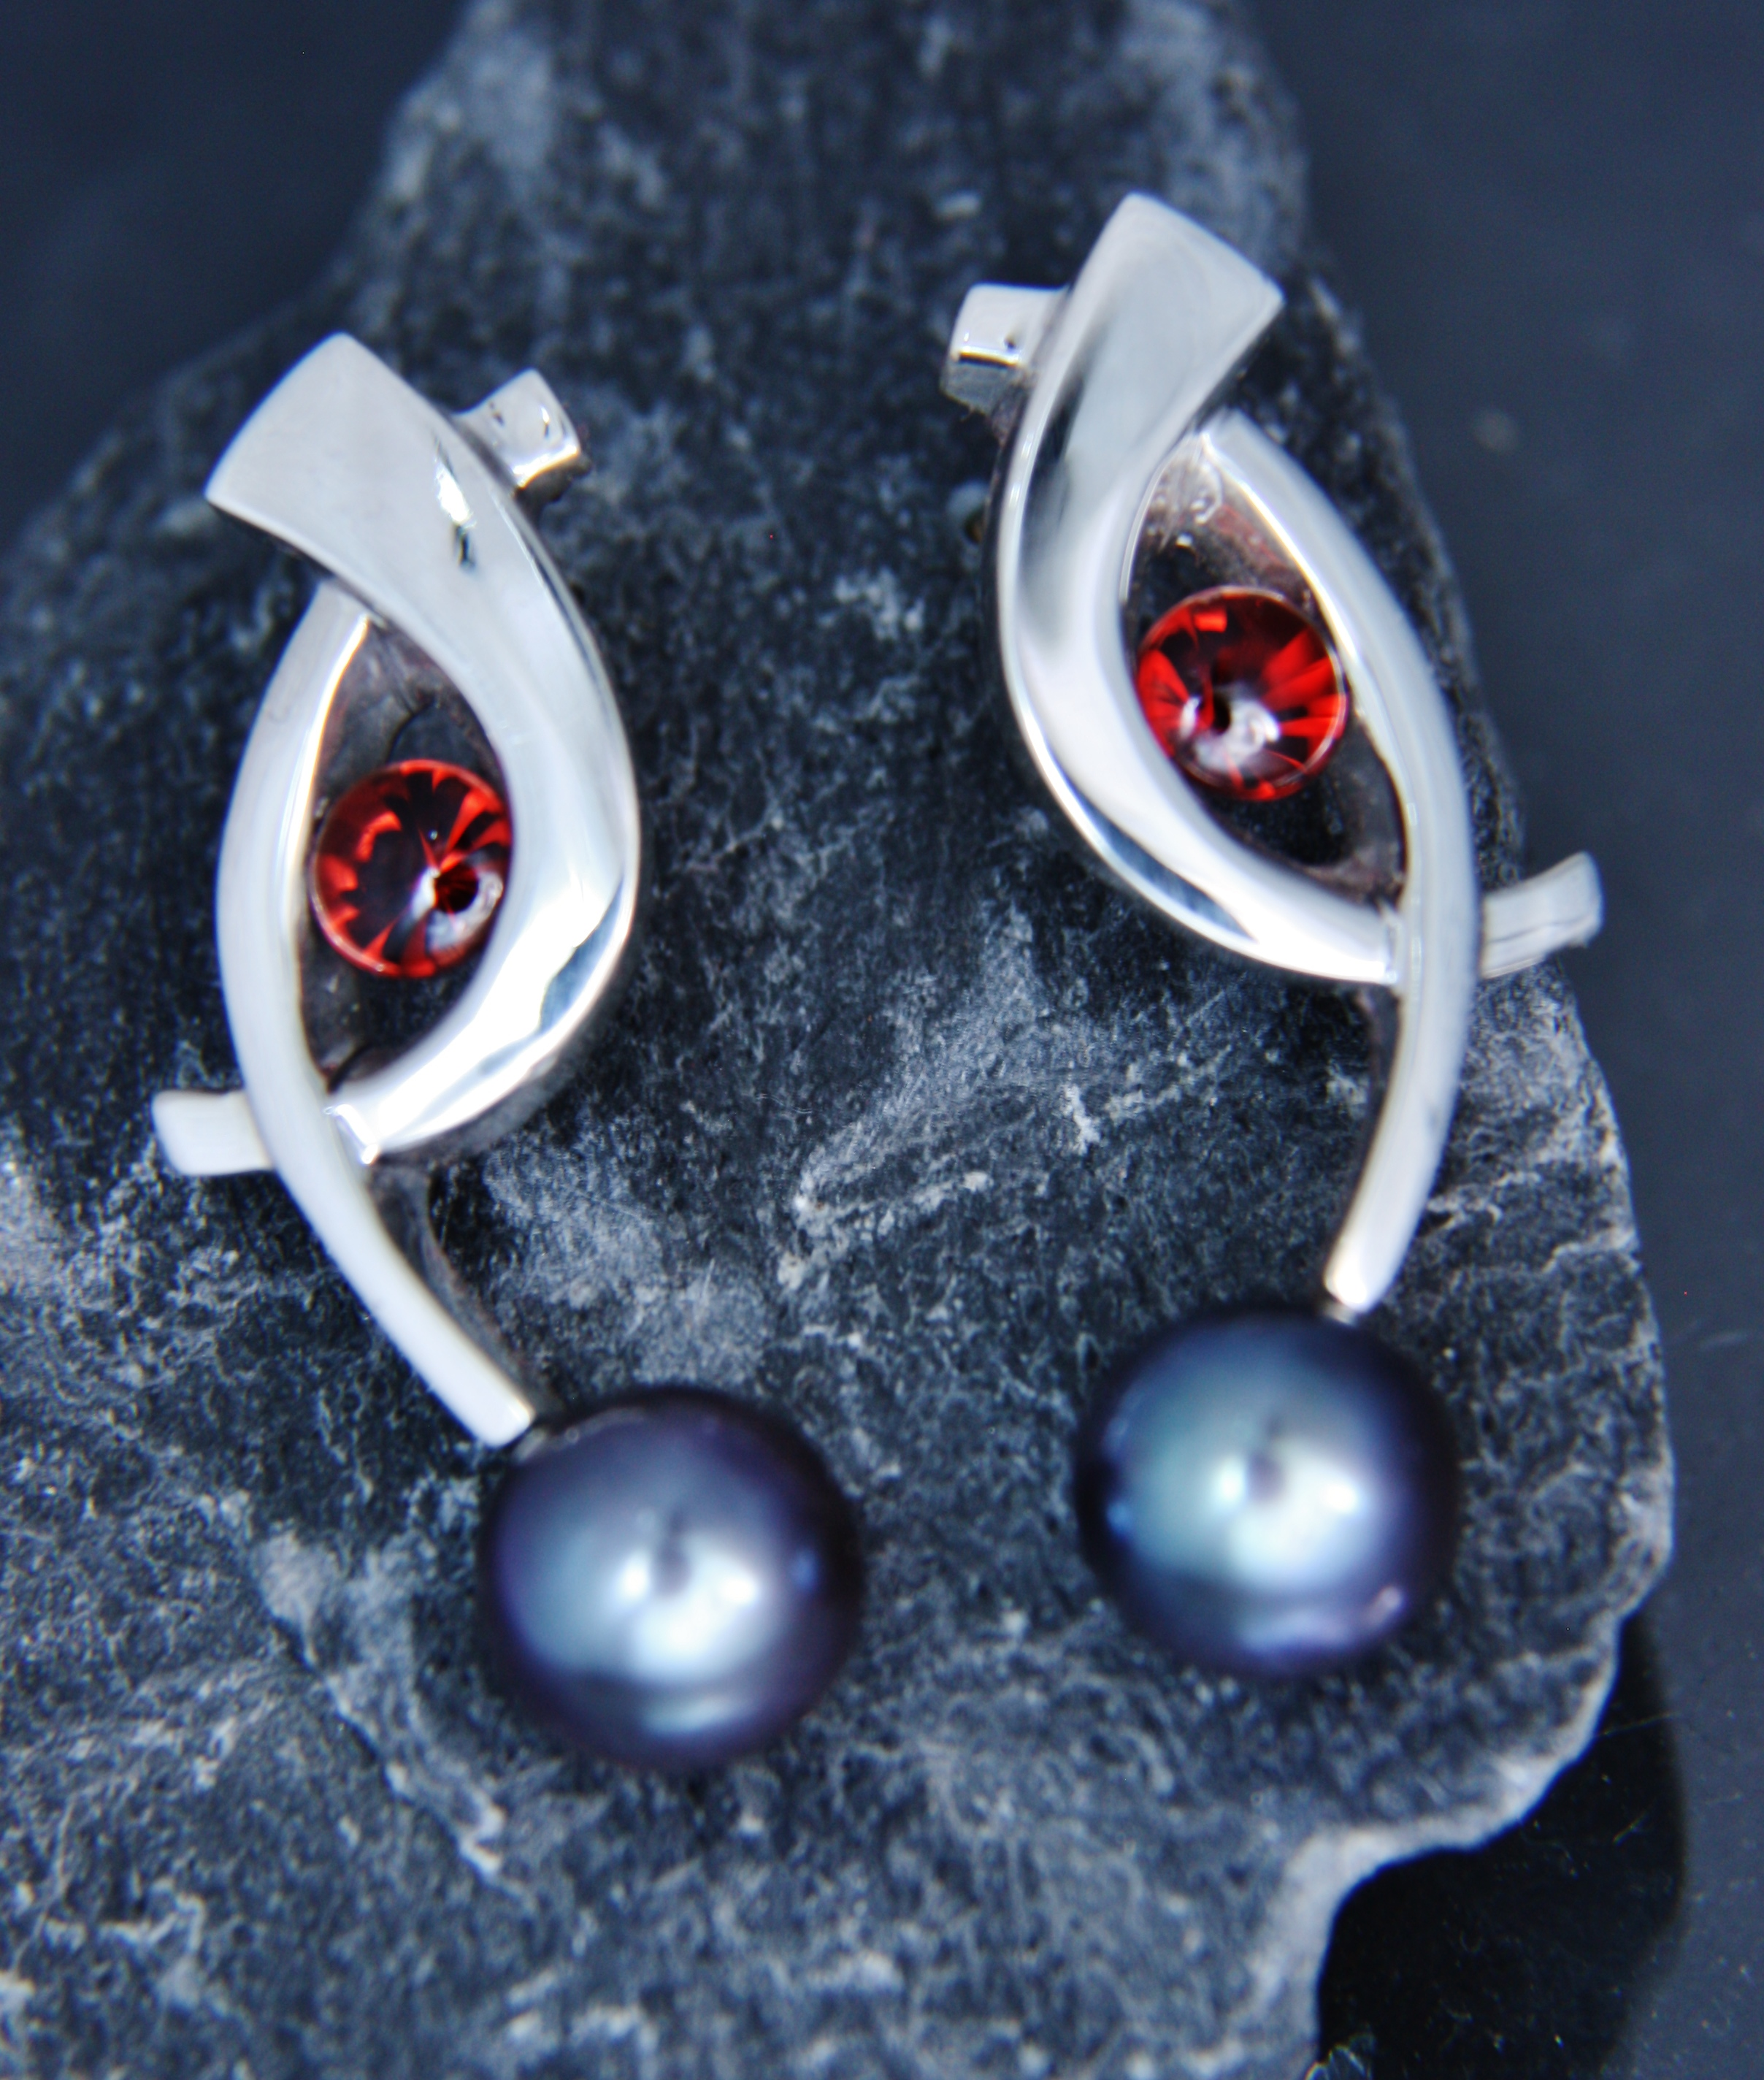 Cast Sterling Silver Earrings with Buffed-Top Garnets and Dyed Freshwater Pearls.